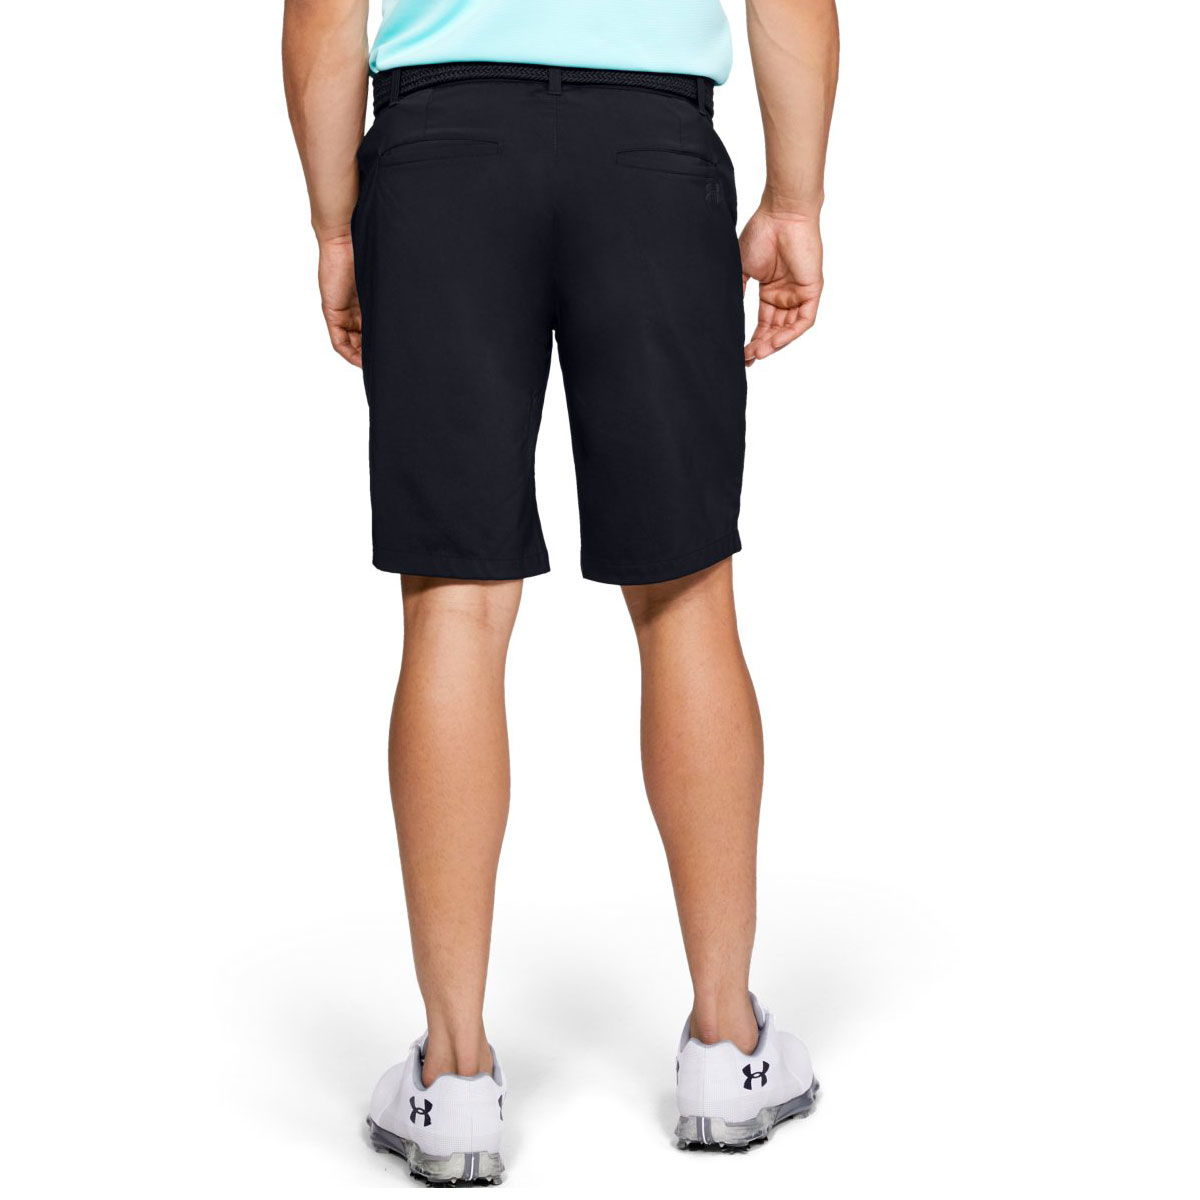 Under-Armour-Mens-EU-Tech-Stretch-Soft-Fitted-Golf-Shorts thumbnail 3